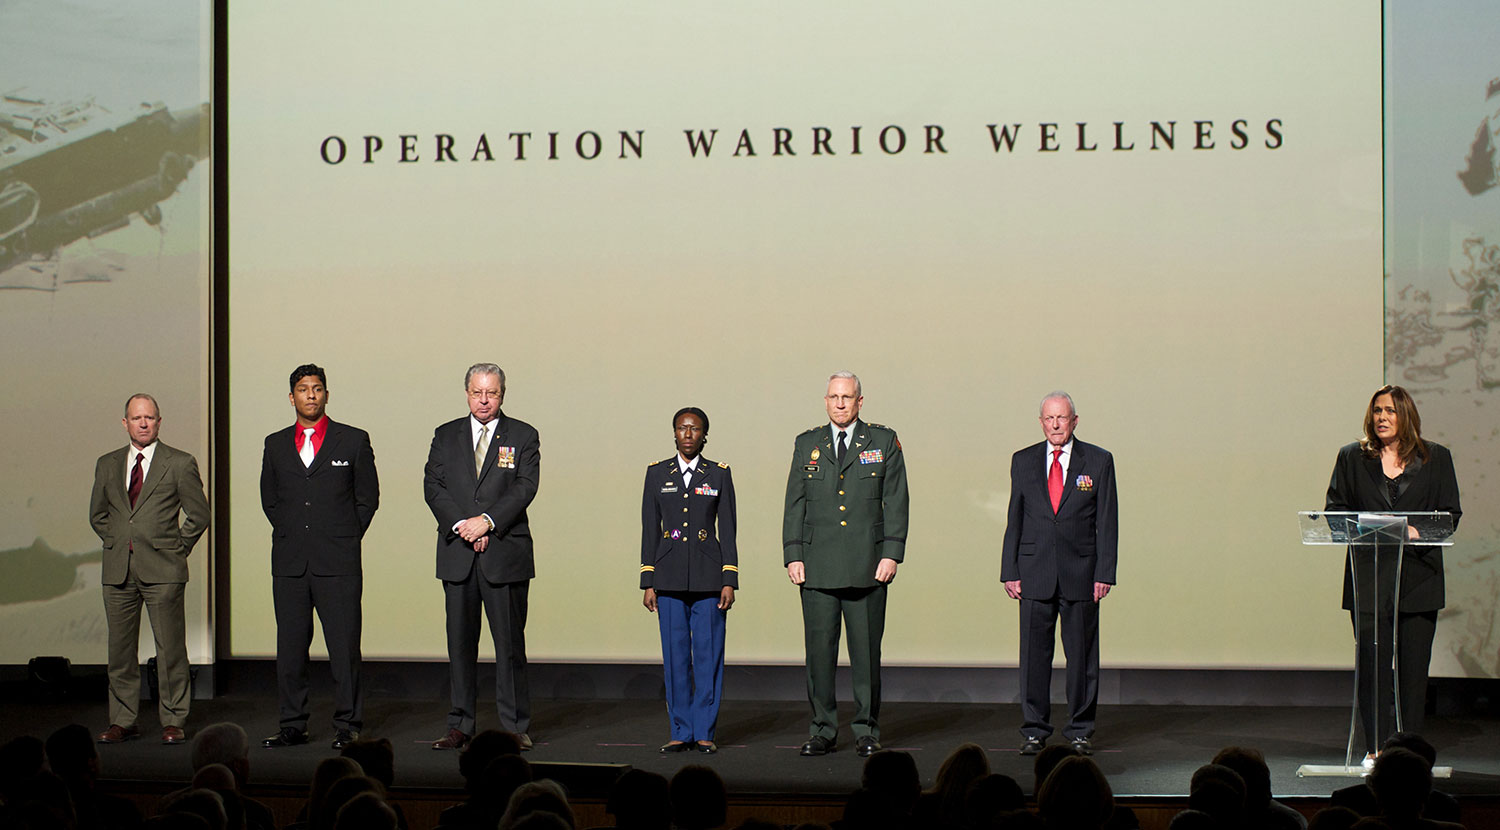 CNN anchor Candy Crowley stands with the leaders of Operation Warrior Wellness, the veterans division of the David Lynch Foundation